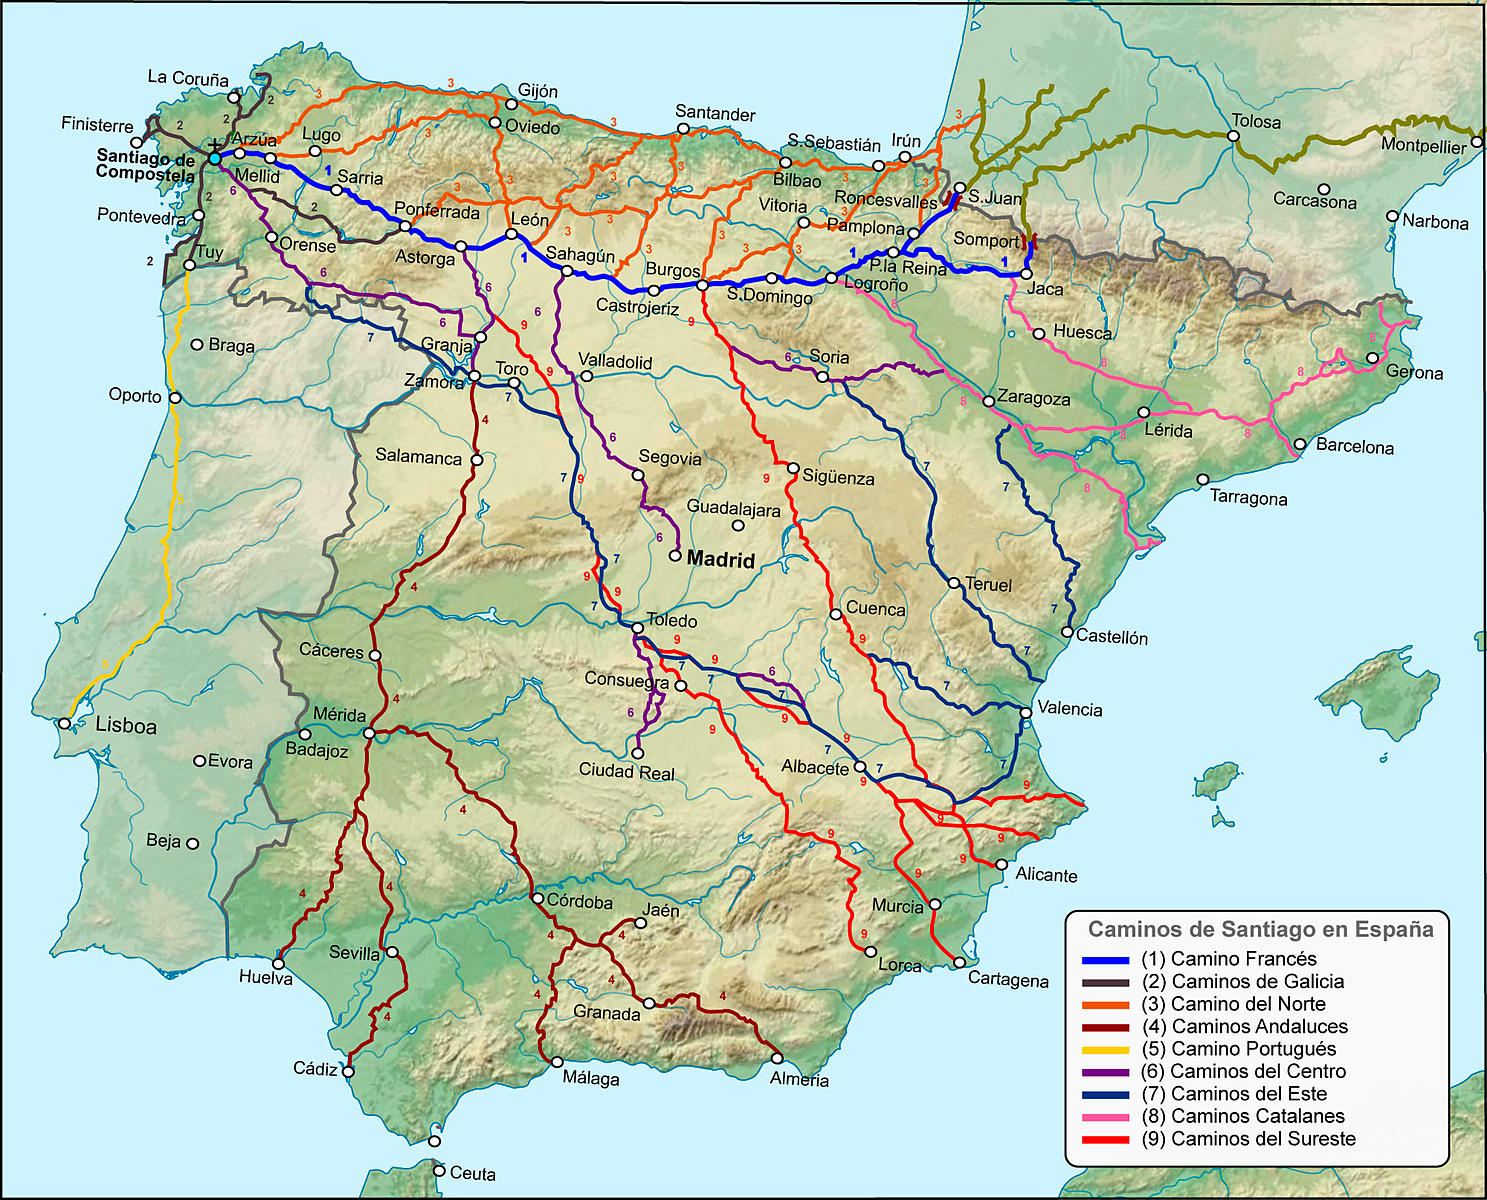 The routes to Santiago in Spain